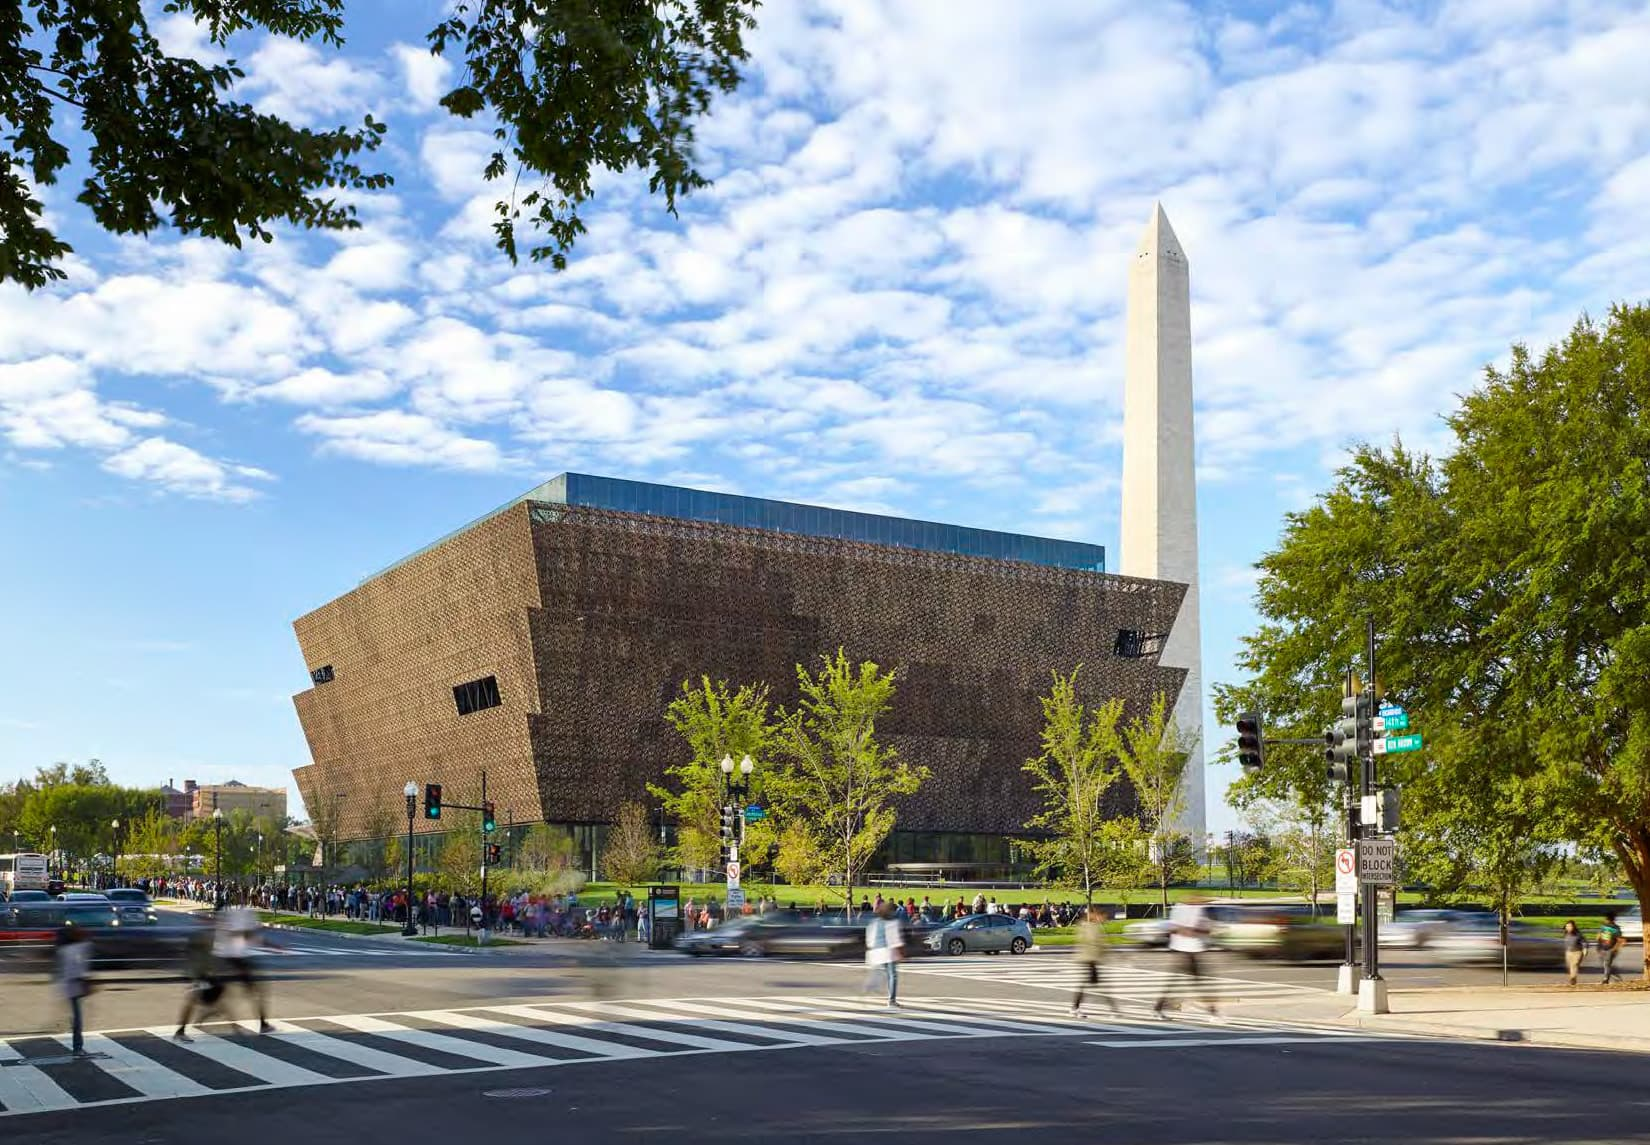 Smithsonian Institution, National Museum of African American History and Culture by Freelon Adjaye Bond (Brad Feinknopf & Alan Karchmer)